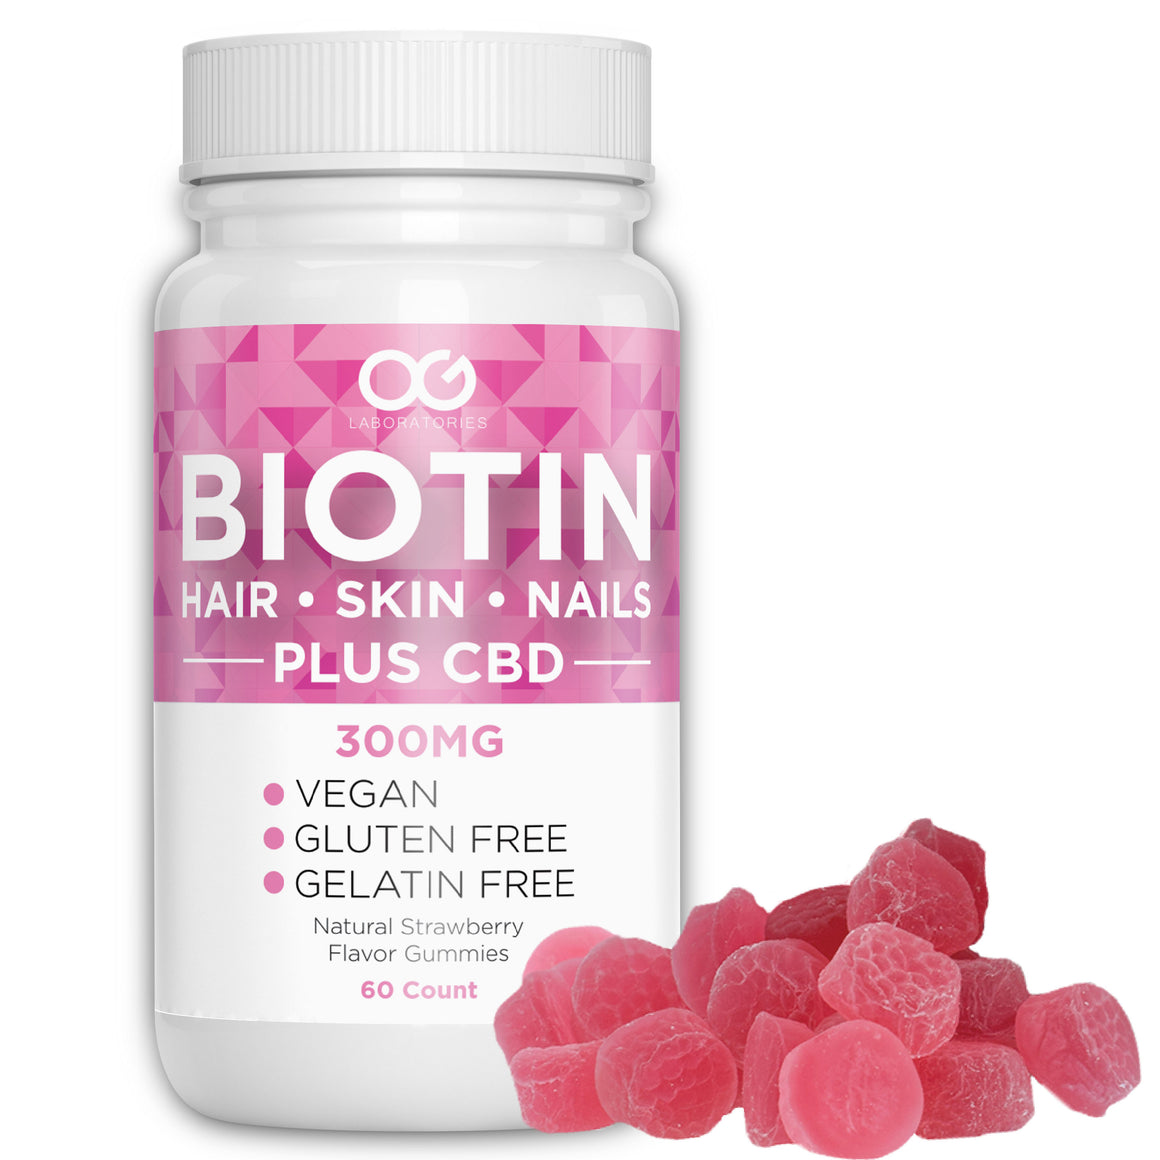 OG Labs CBD Gummies - Biotin 300mg at Modest Hemp Co.